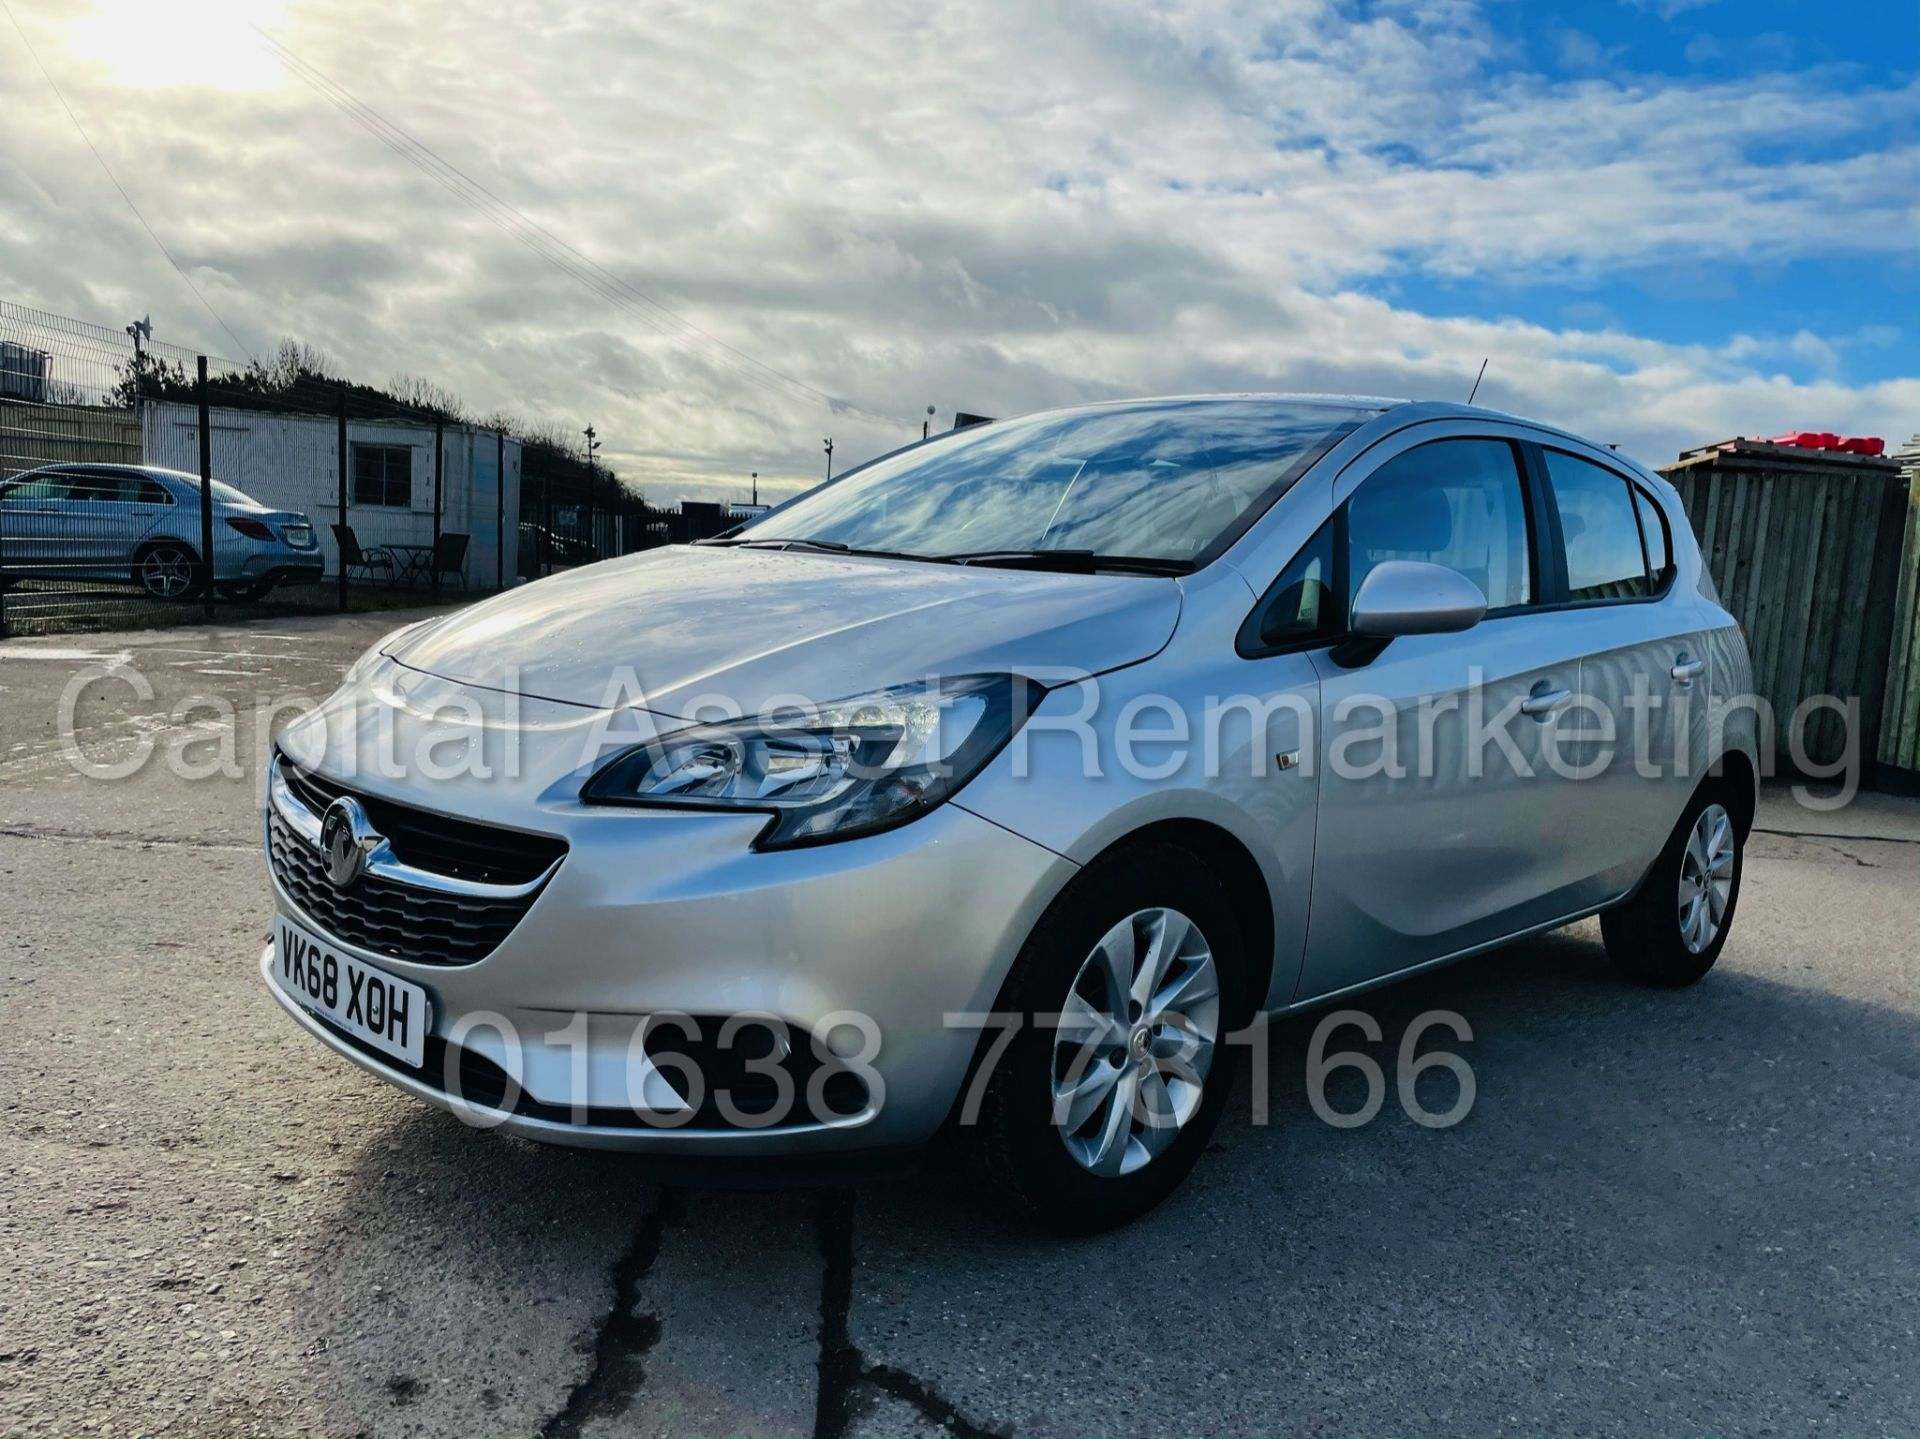 On Sale VAUXHALL CORSA *DESIGN EDITION* 5 DOOR HATCHBACK (2019 - NEW MODEL) 1.4 PETROL - (1 OWNER) - Image 5 of 42